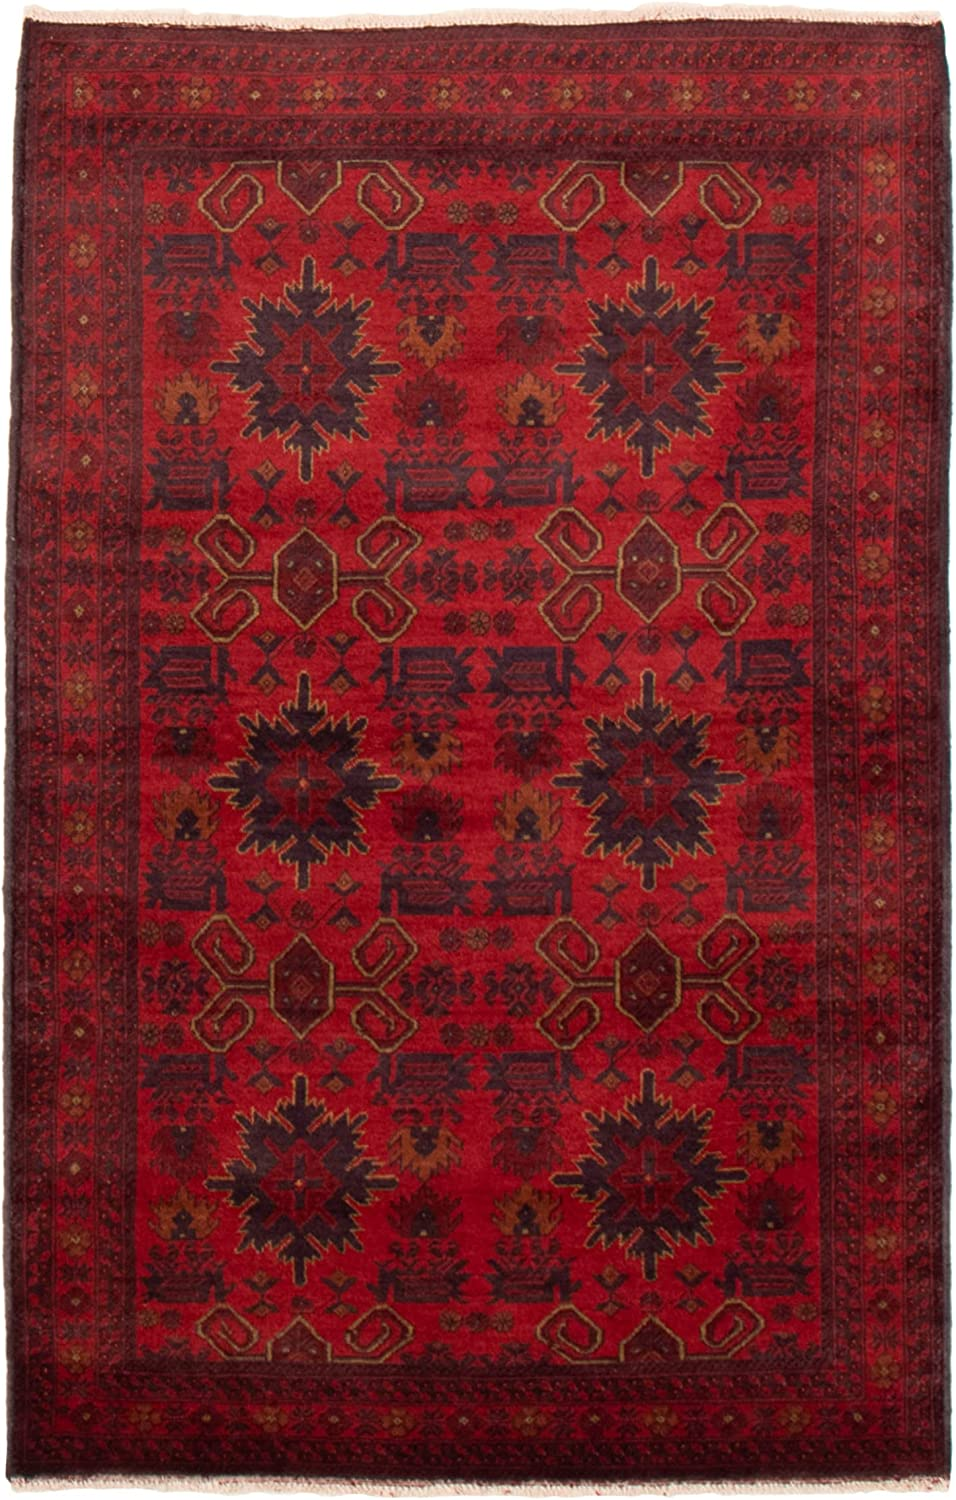 eCarpet Gallery Directly Max 89% OFF managed store Area Rug for Room Living Hand-Knotted Bedroom